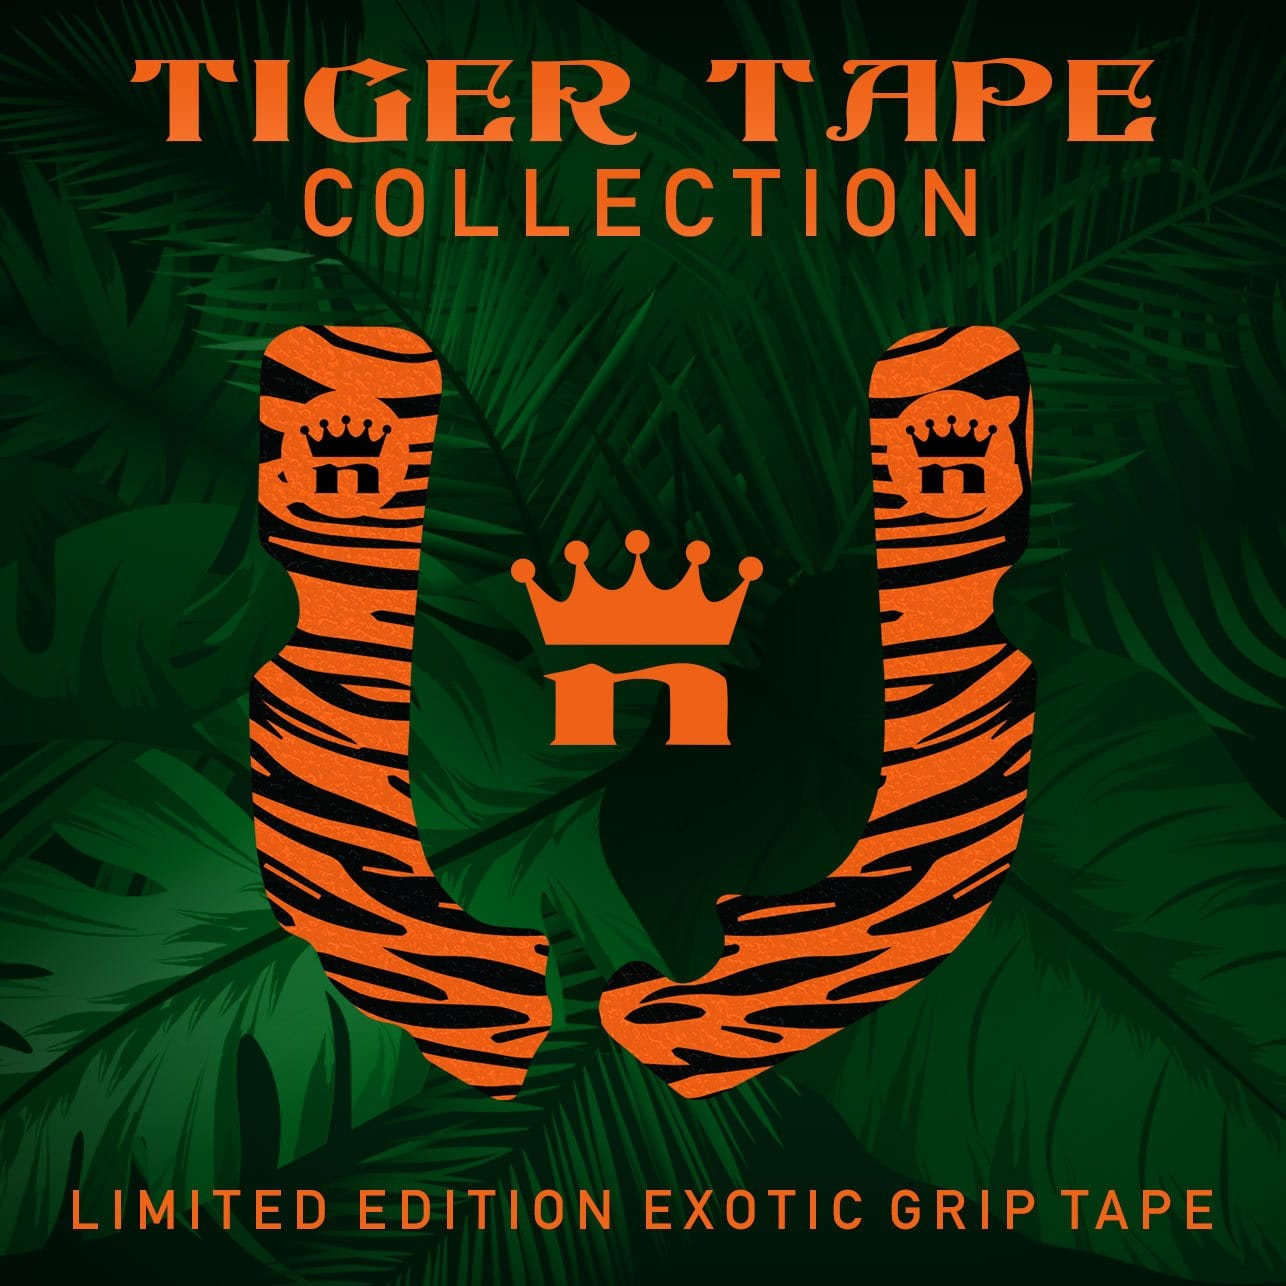 Tiger Tape Collection - Limited Edition - Exotic Grip Tape